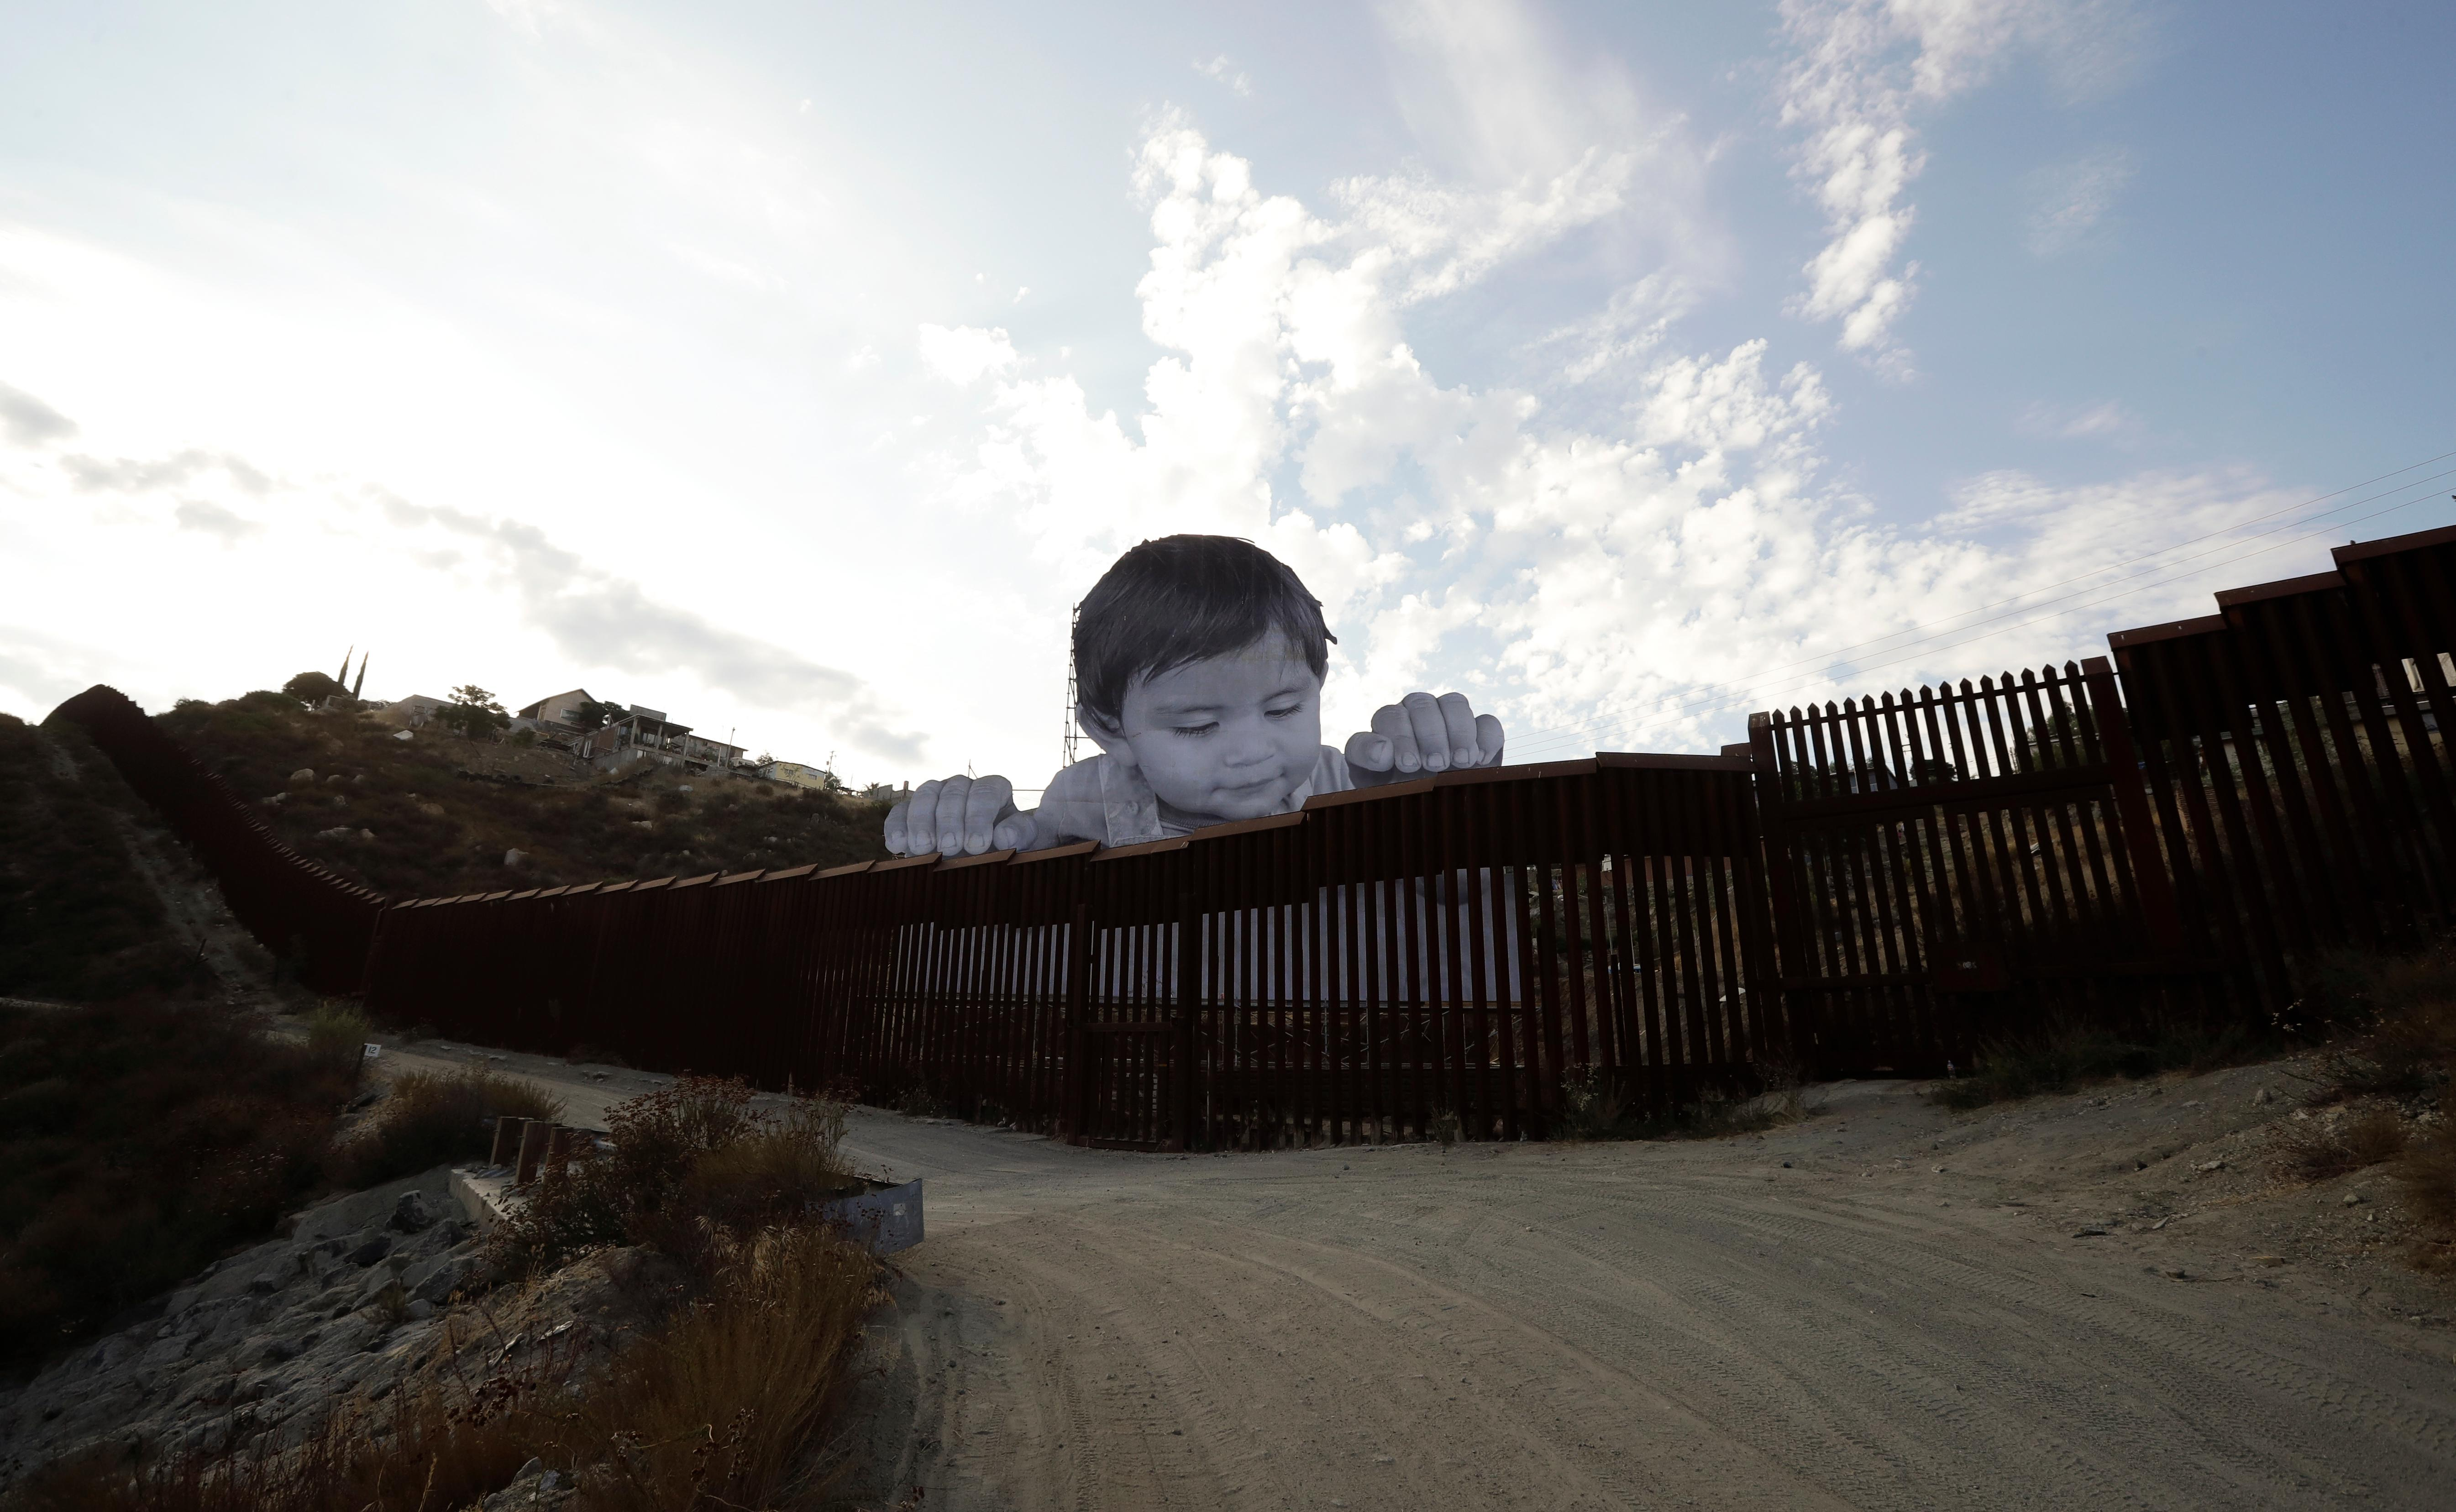 A mural in Tecate, Mexico, sits just beyond a border structure Friday, Sept. 8, 2017, seen from Tecate, Calif. A French artist aiming to prompt discussions about immigration erected a 65-foot-tall cut-out photo of a Mexican boy, pasting it to scaffolding built in Mexico. The image overlooks a section of wall on the California border and will be there for a month. (AP Photo/Gregory Bull)